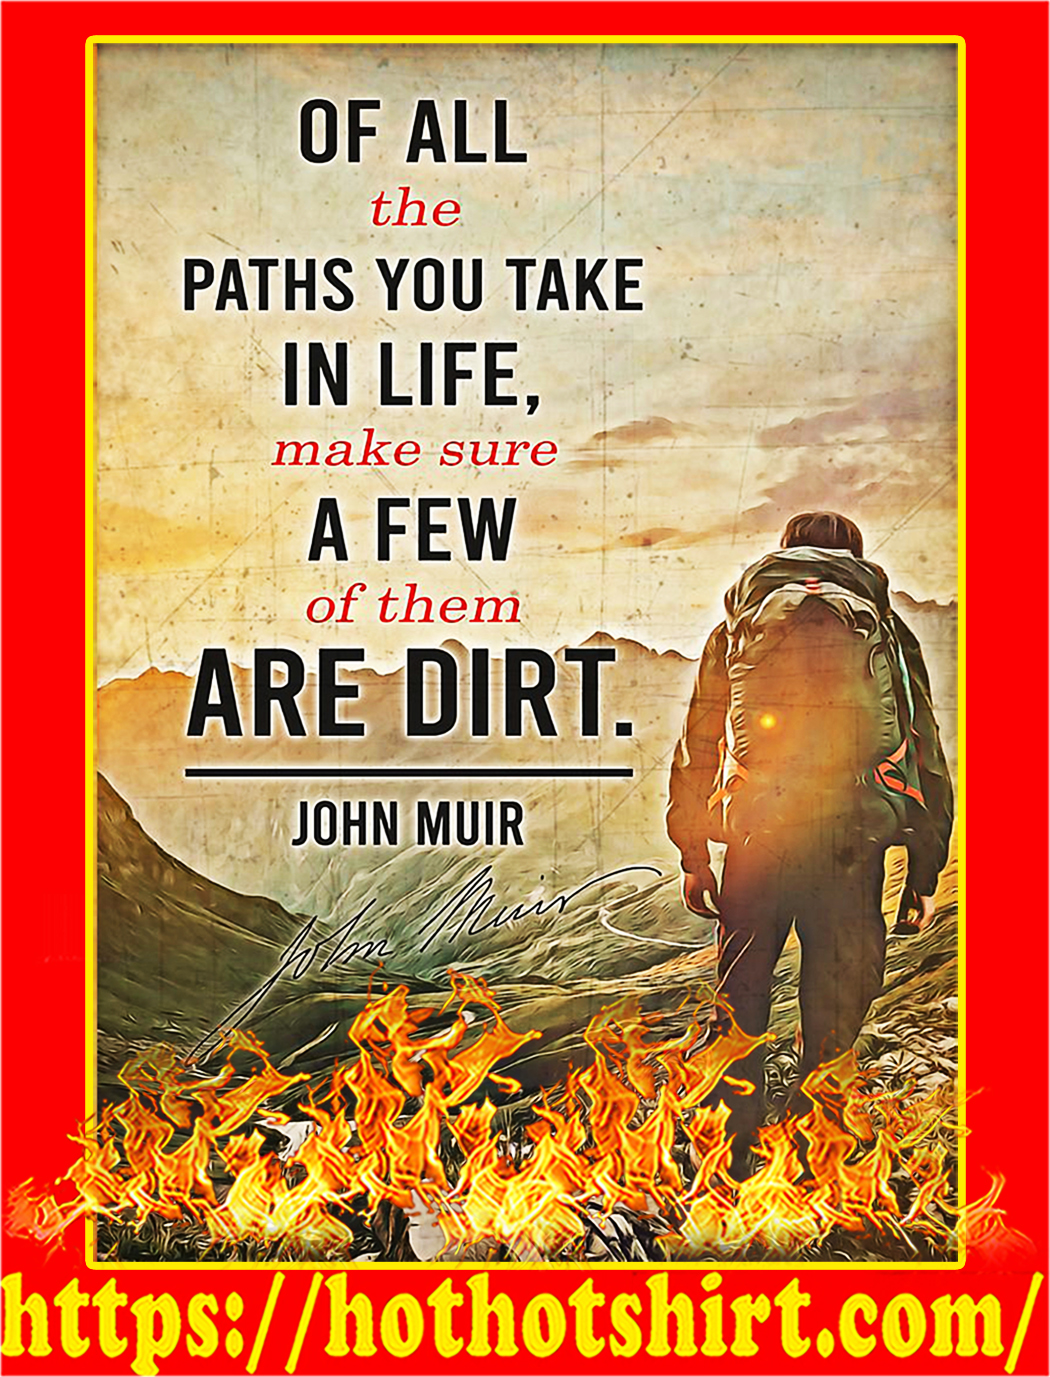 John muir Off all the paths you take in life poster - A2